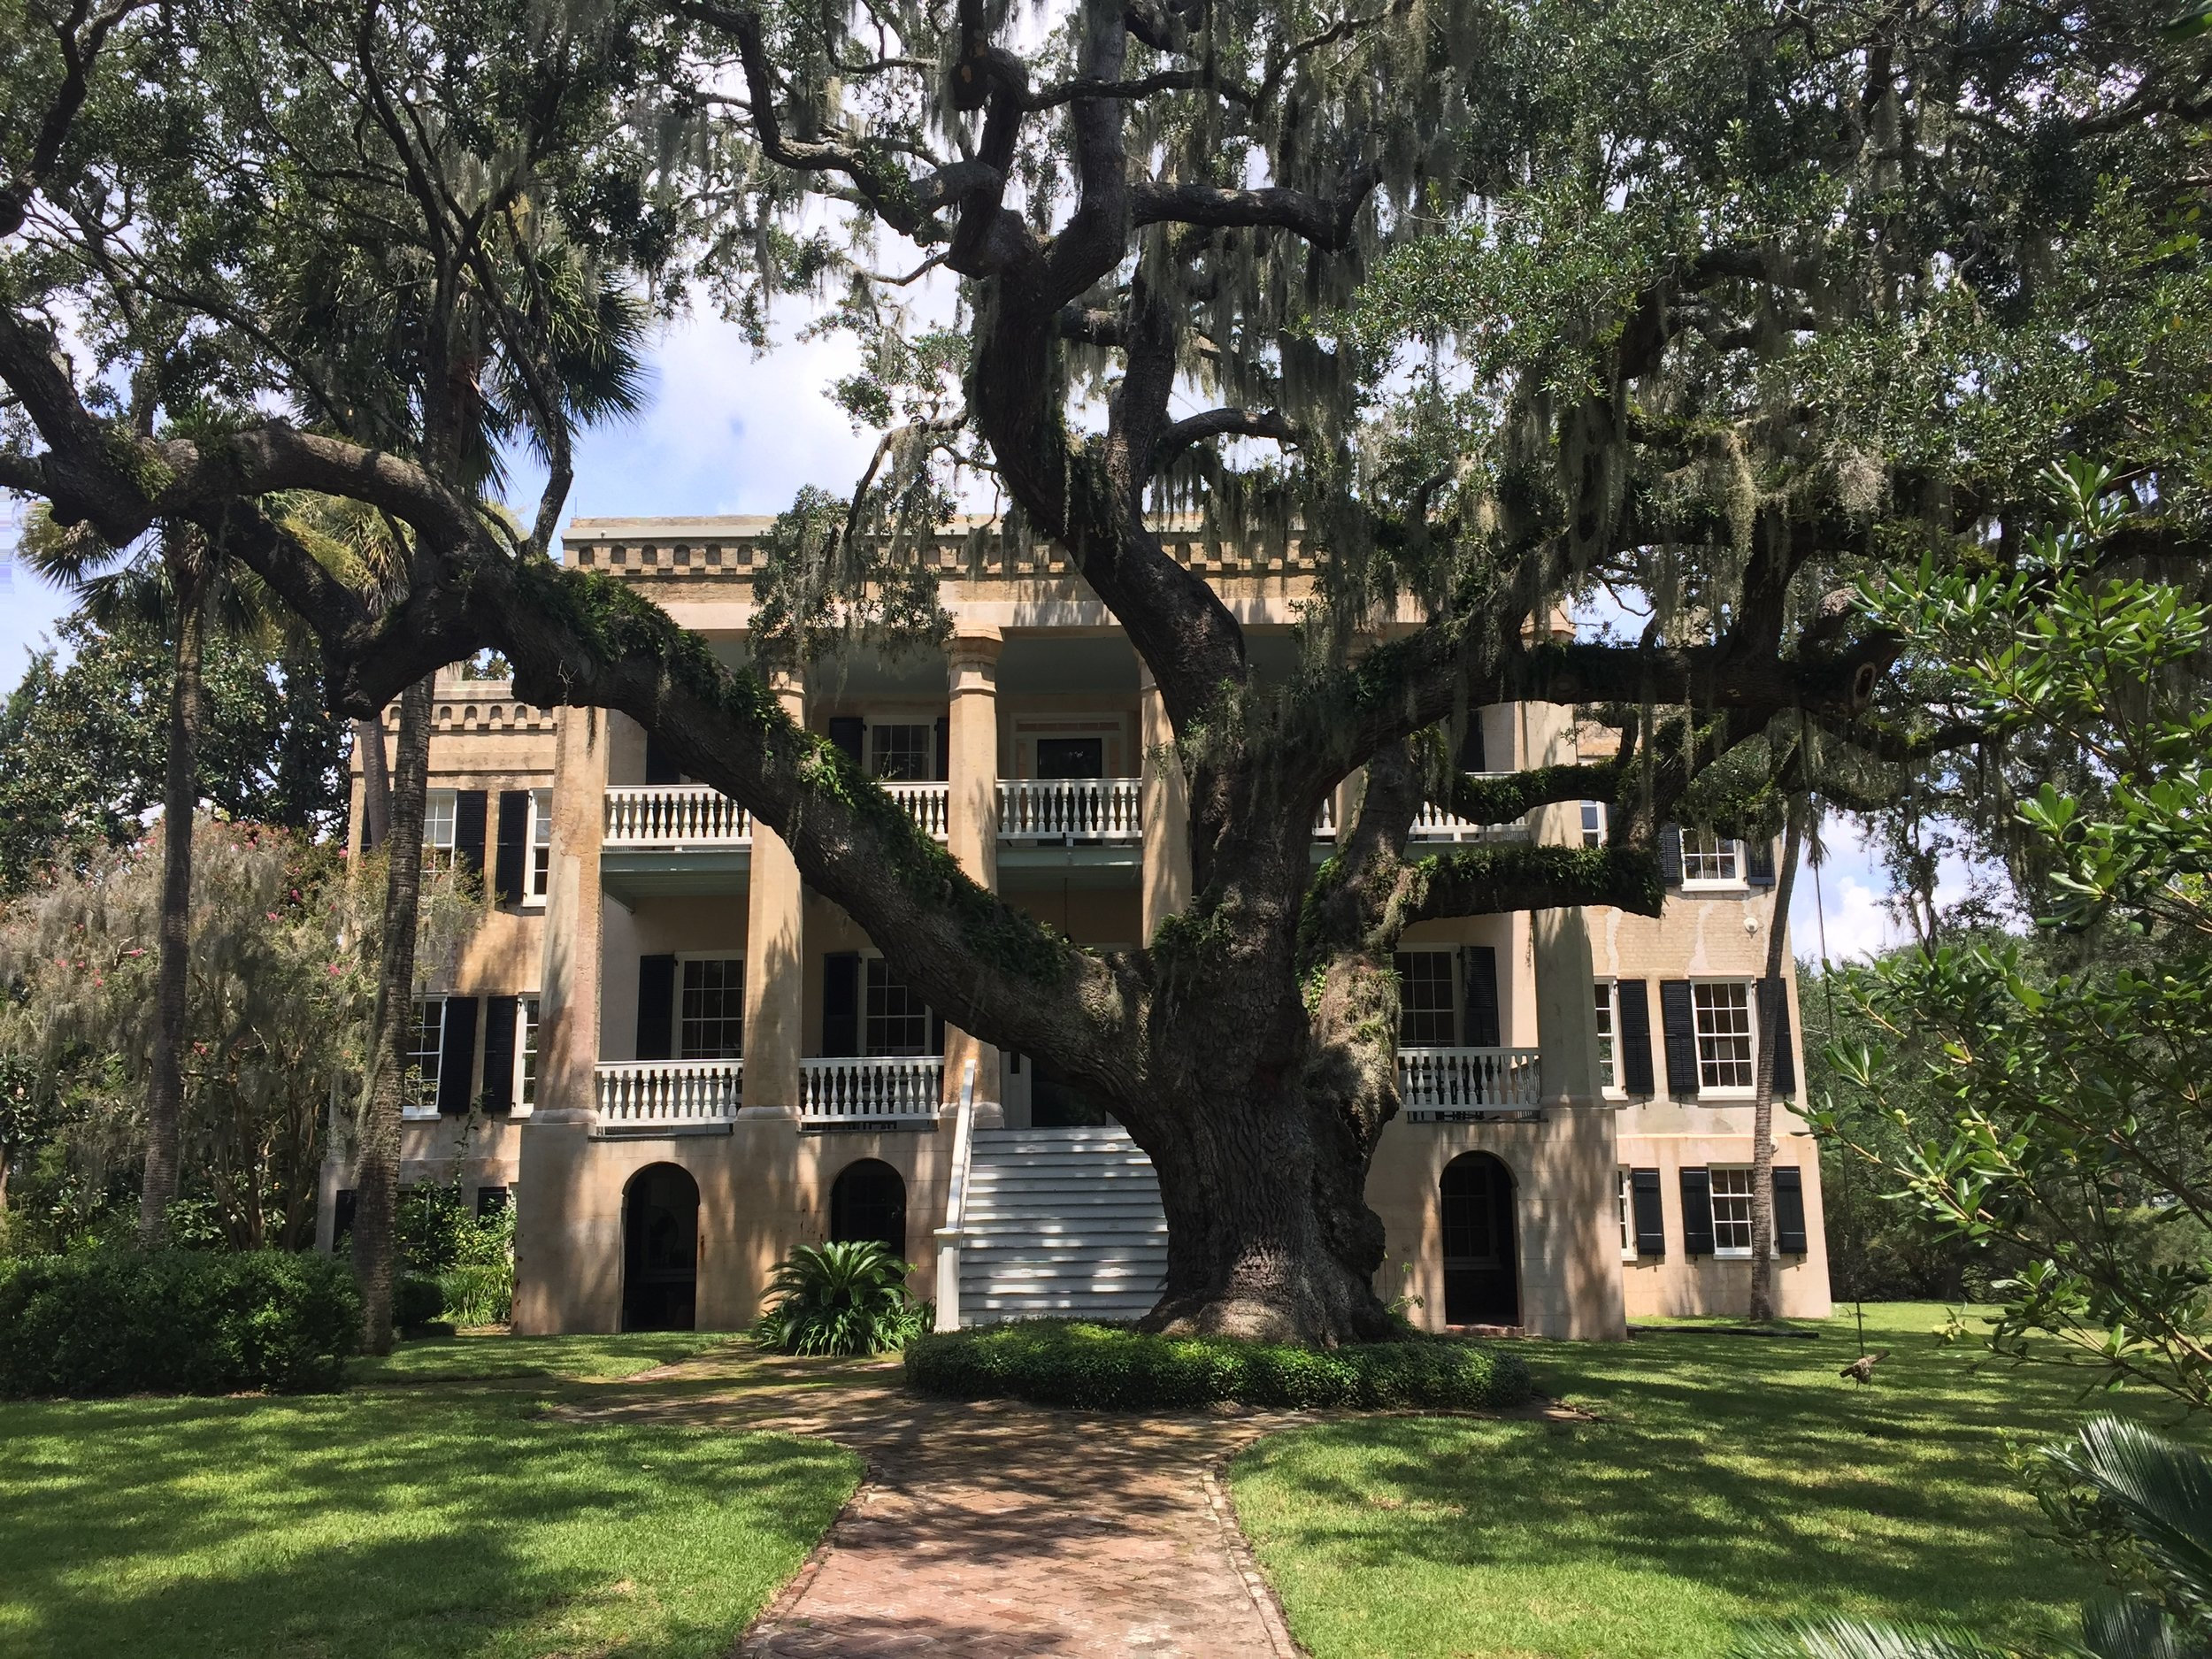 """Known as """"The Castle"""" in Beaufort, South Carolina.  Photographed shot by Stephanie (author) on vacation in Beaufort."""